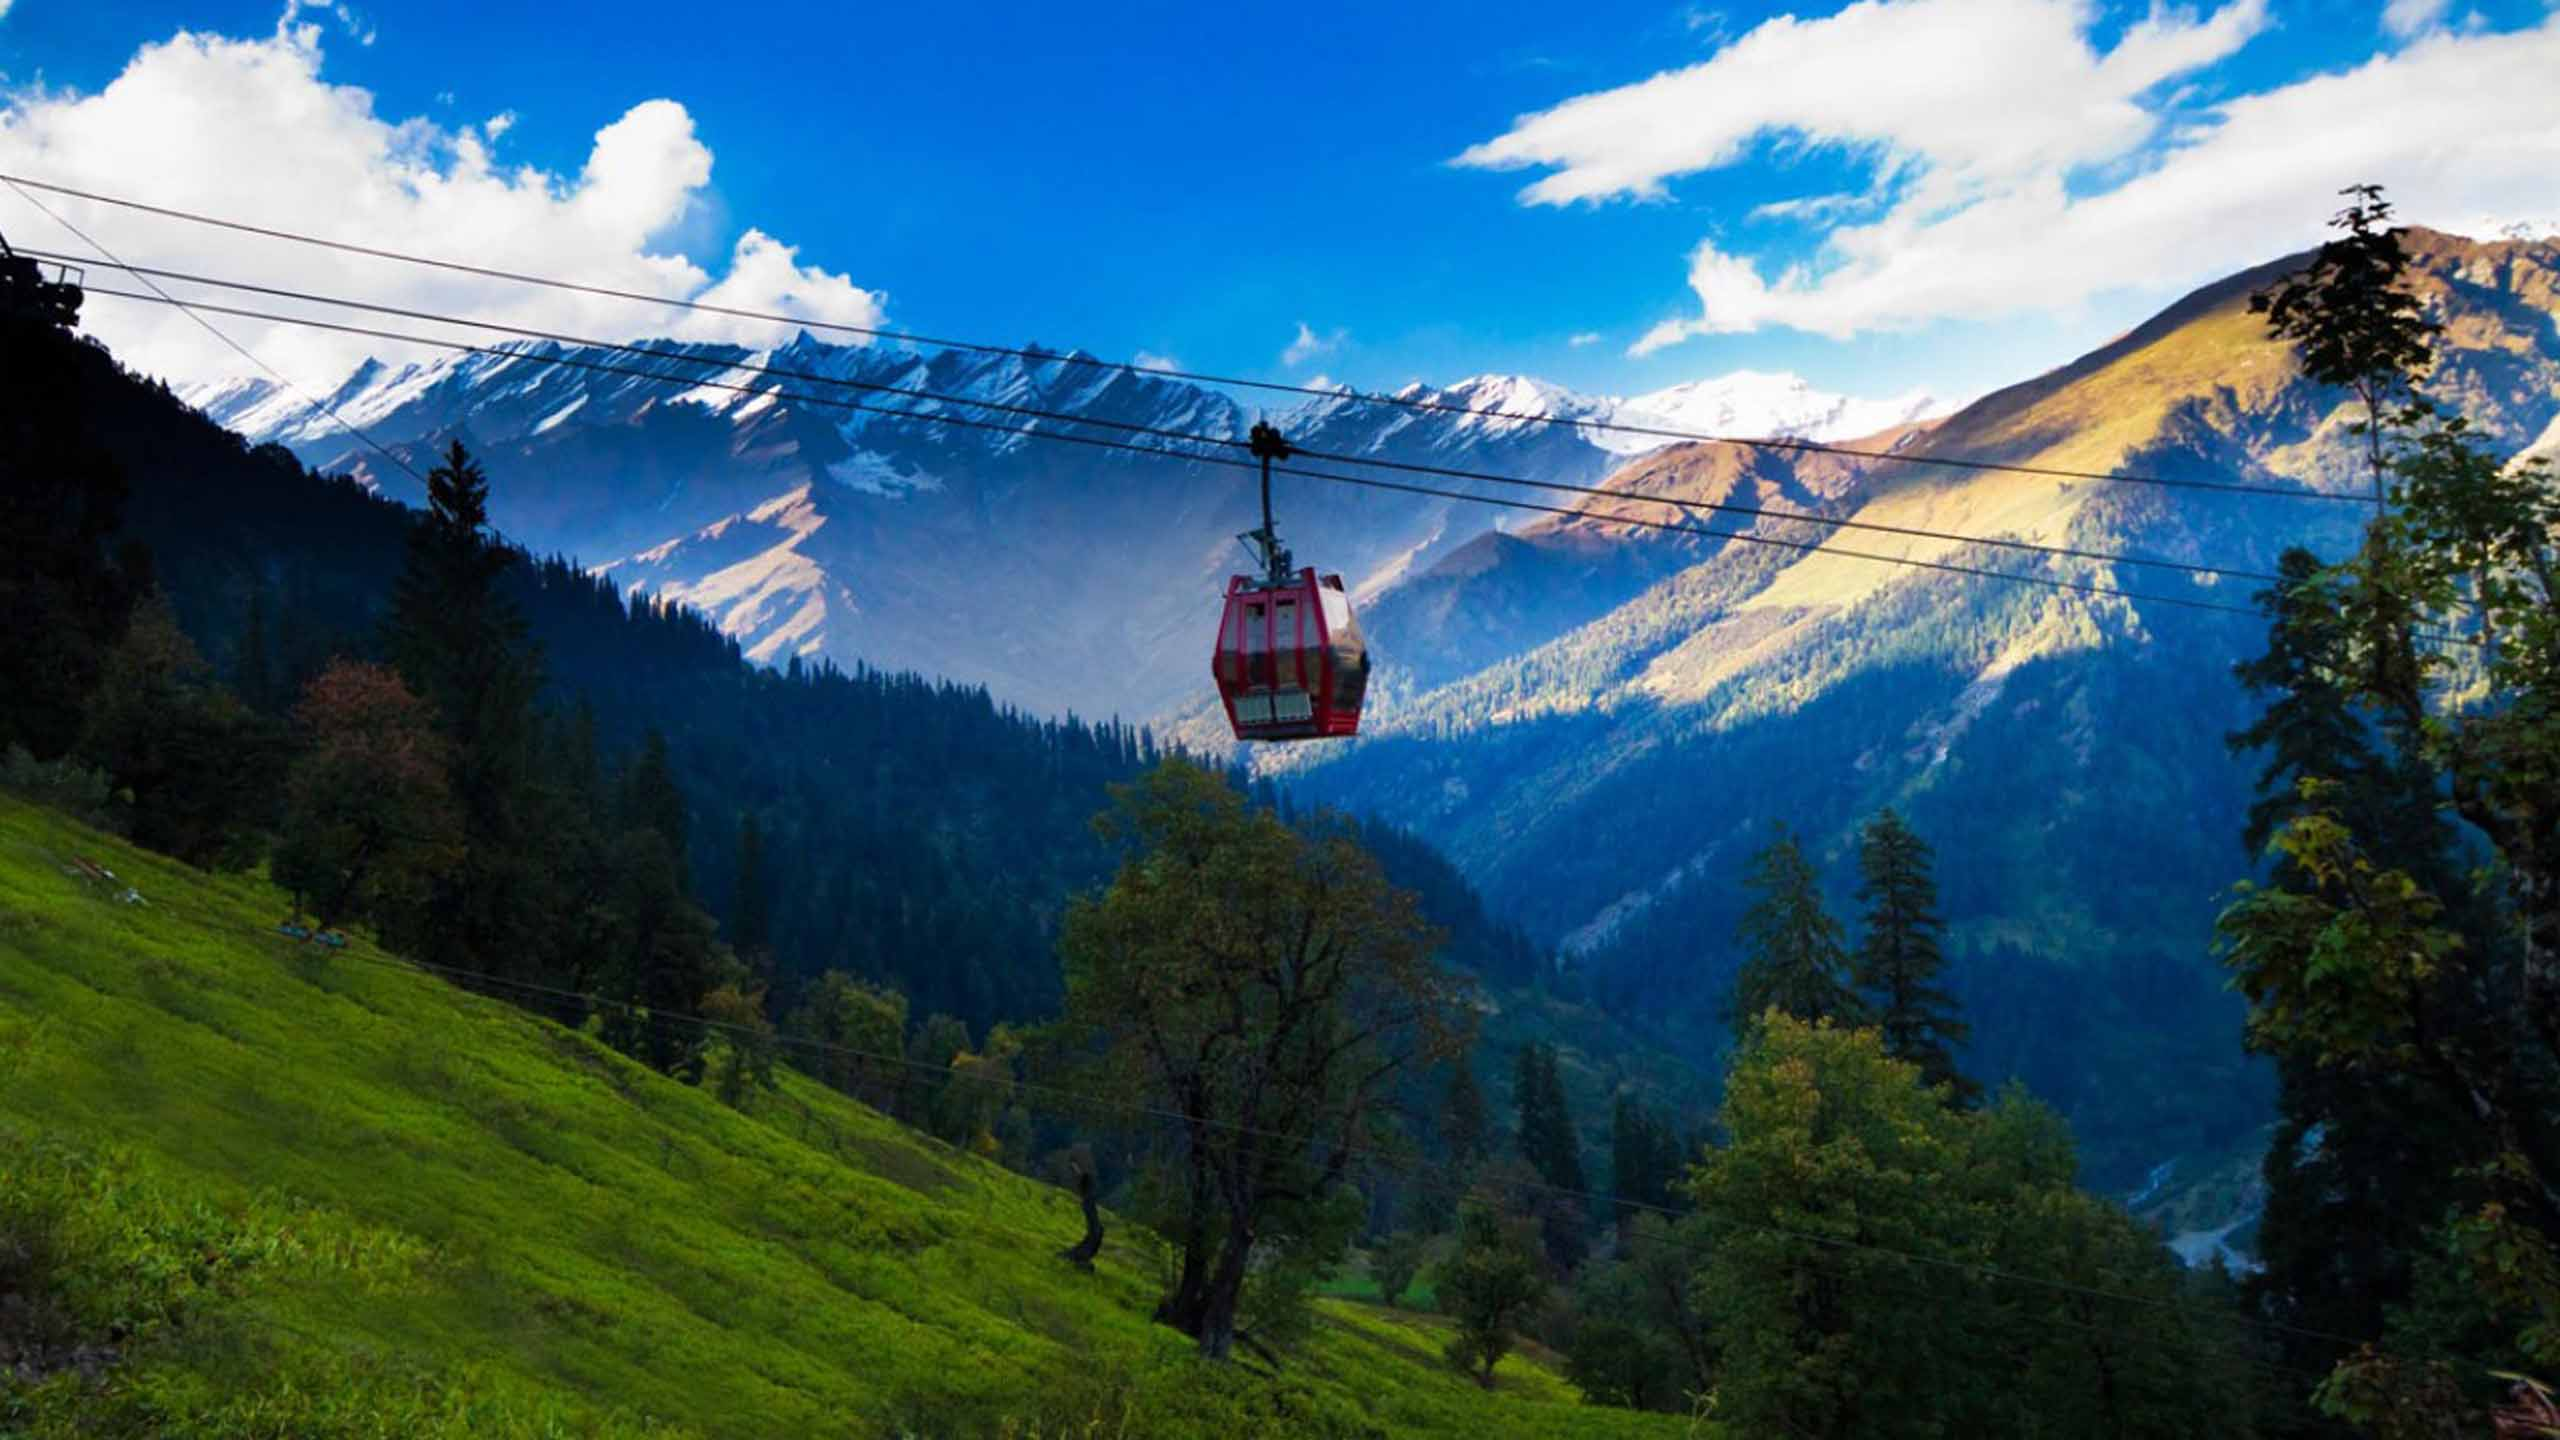 Manali volvo tour package: 03 Hotel nights + 02 Nights overnight journey